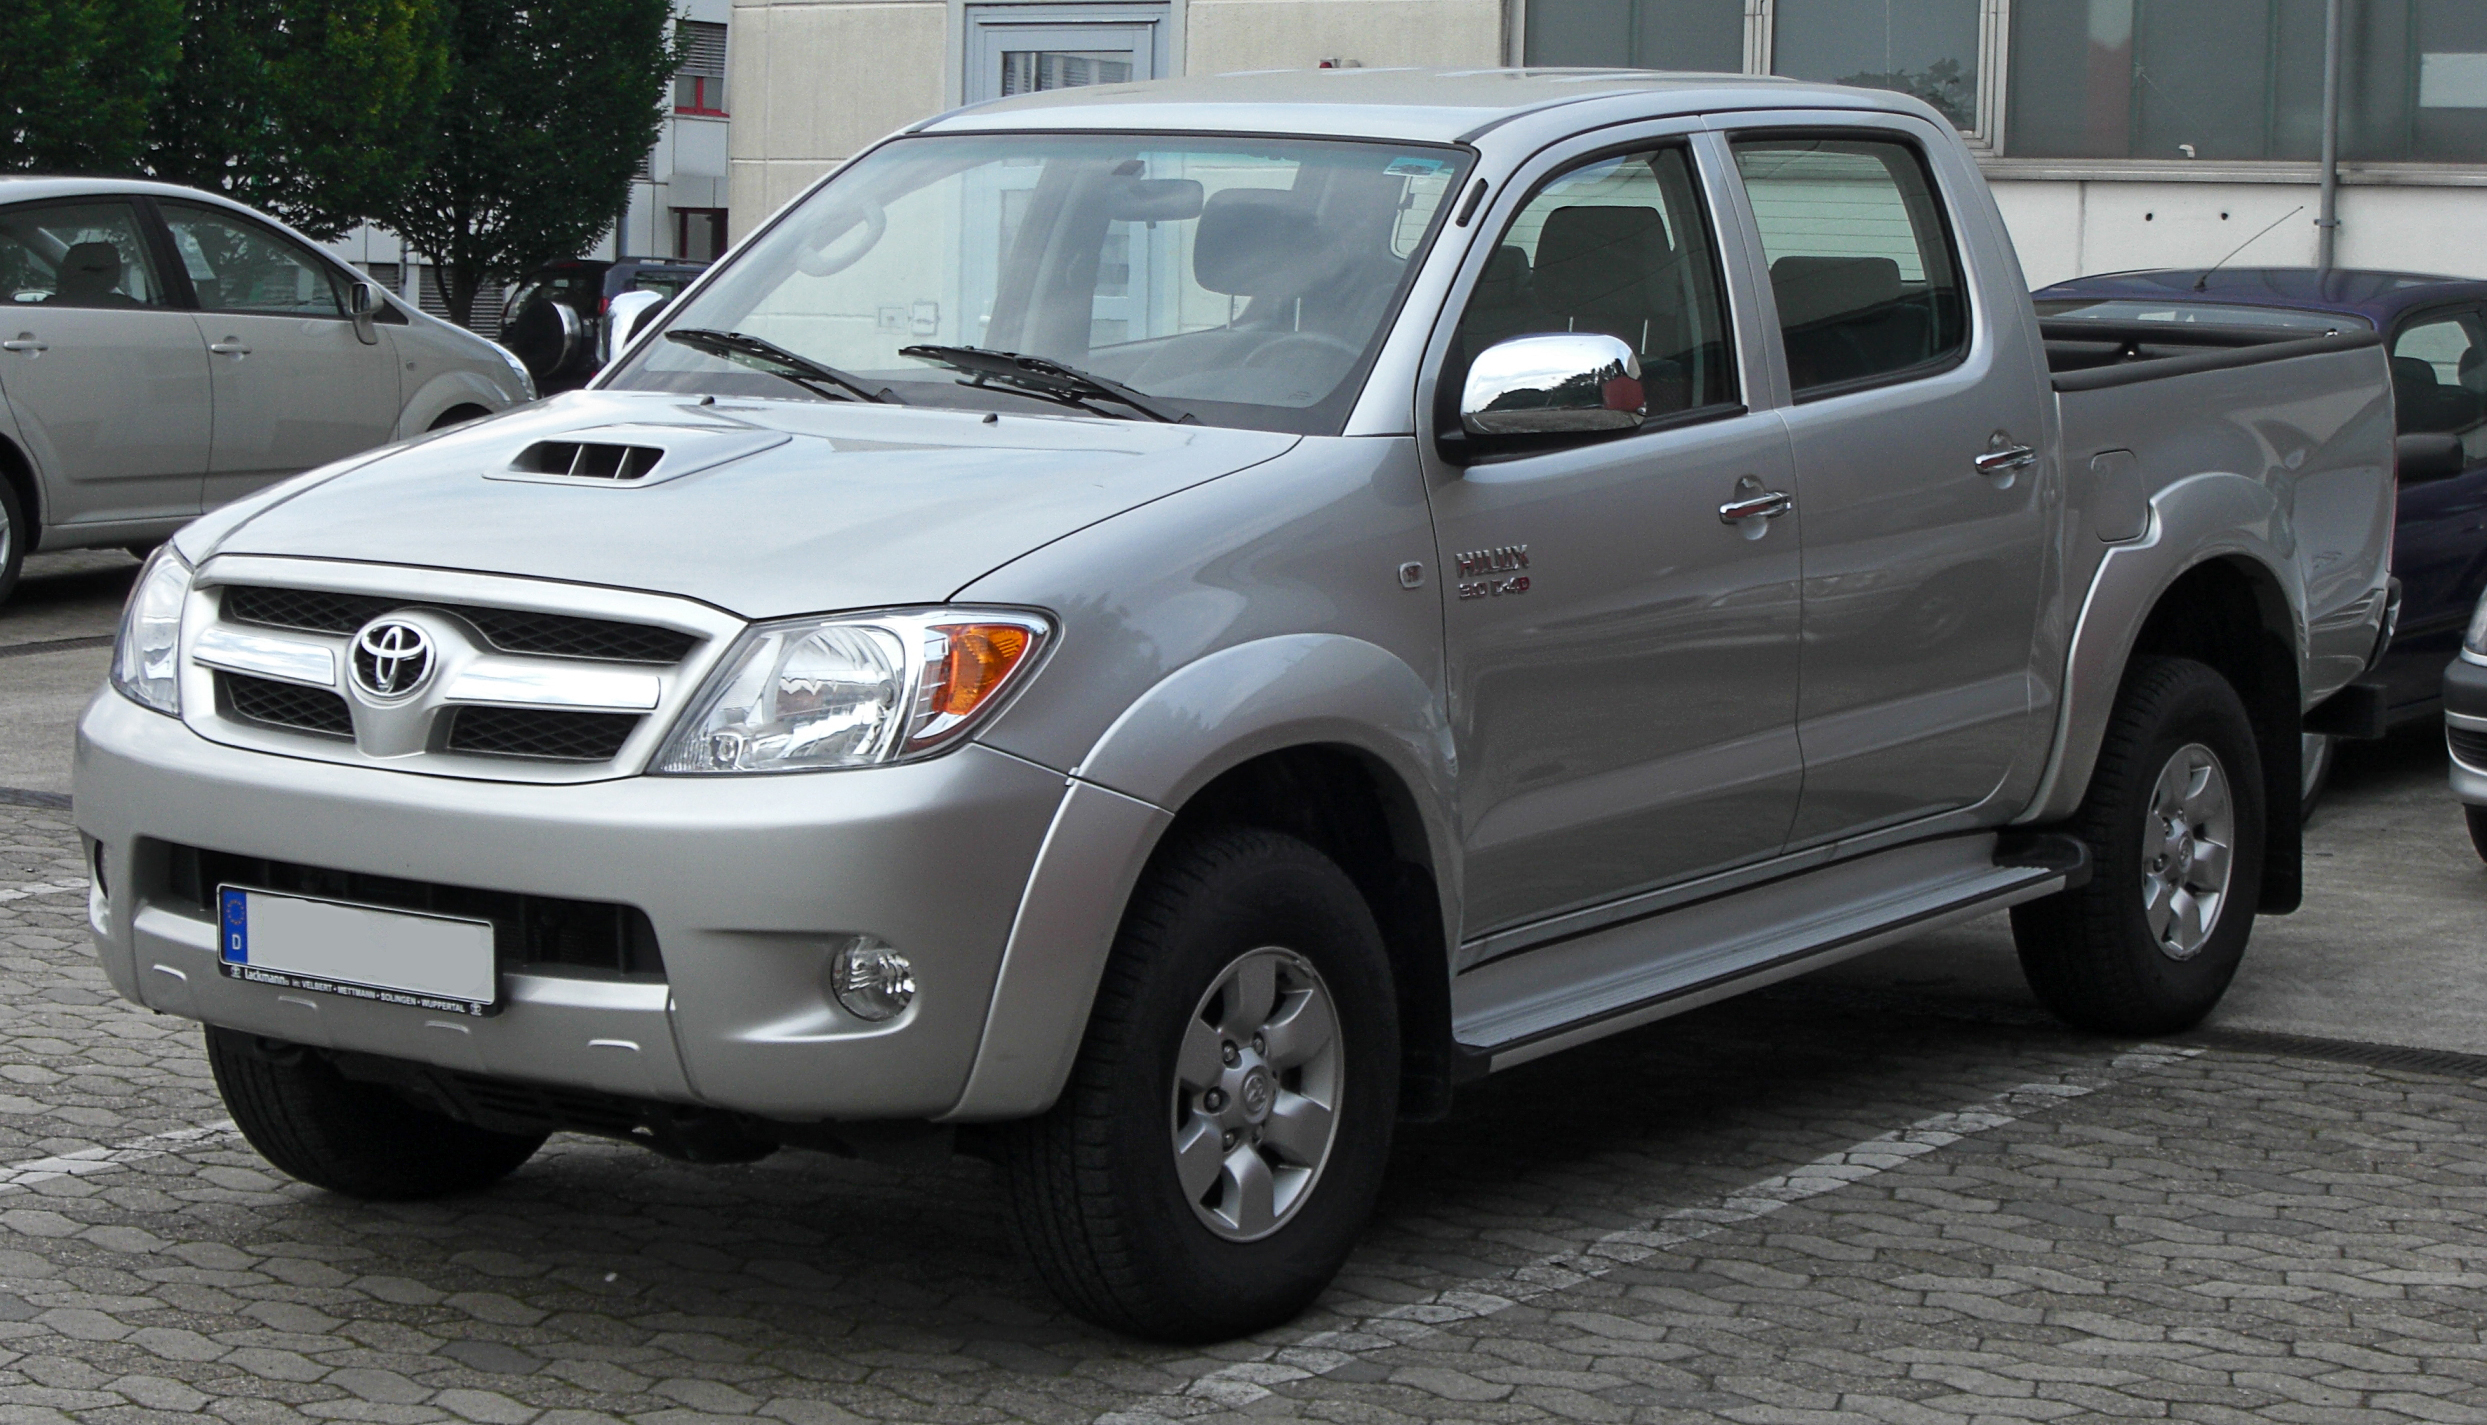 Description Toyota Hilux Double Cab 3.0 D-4D front.jpg